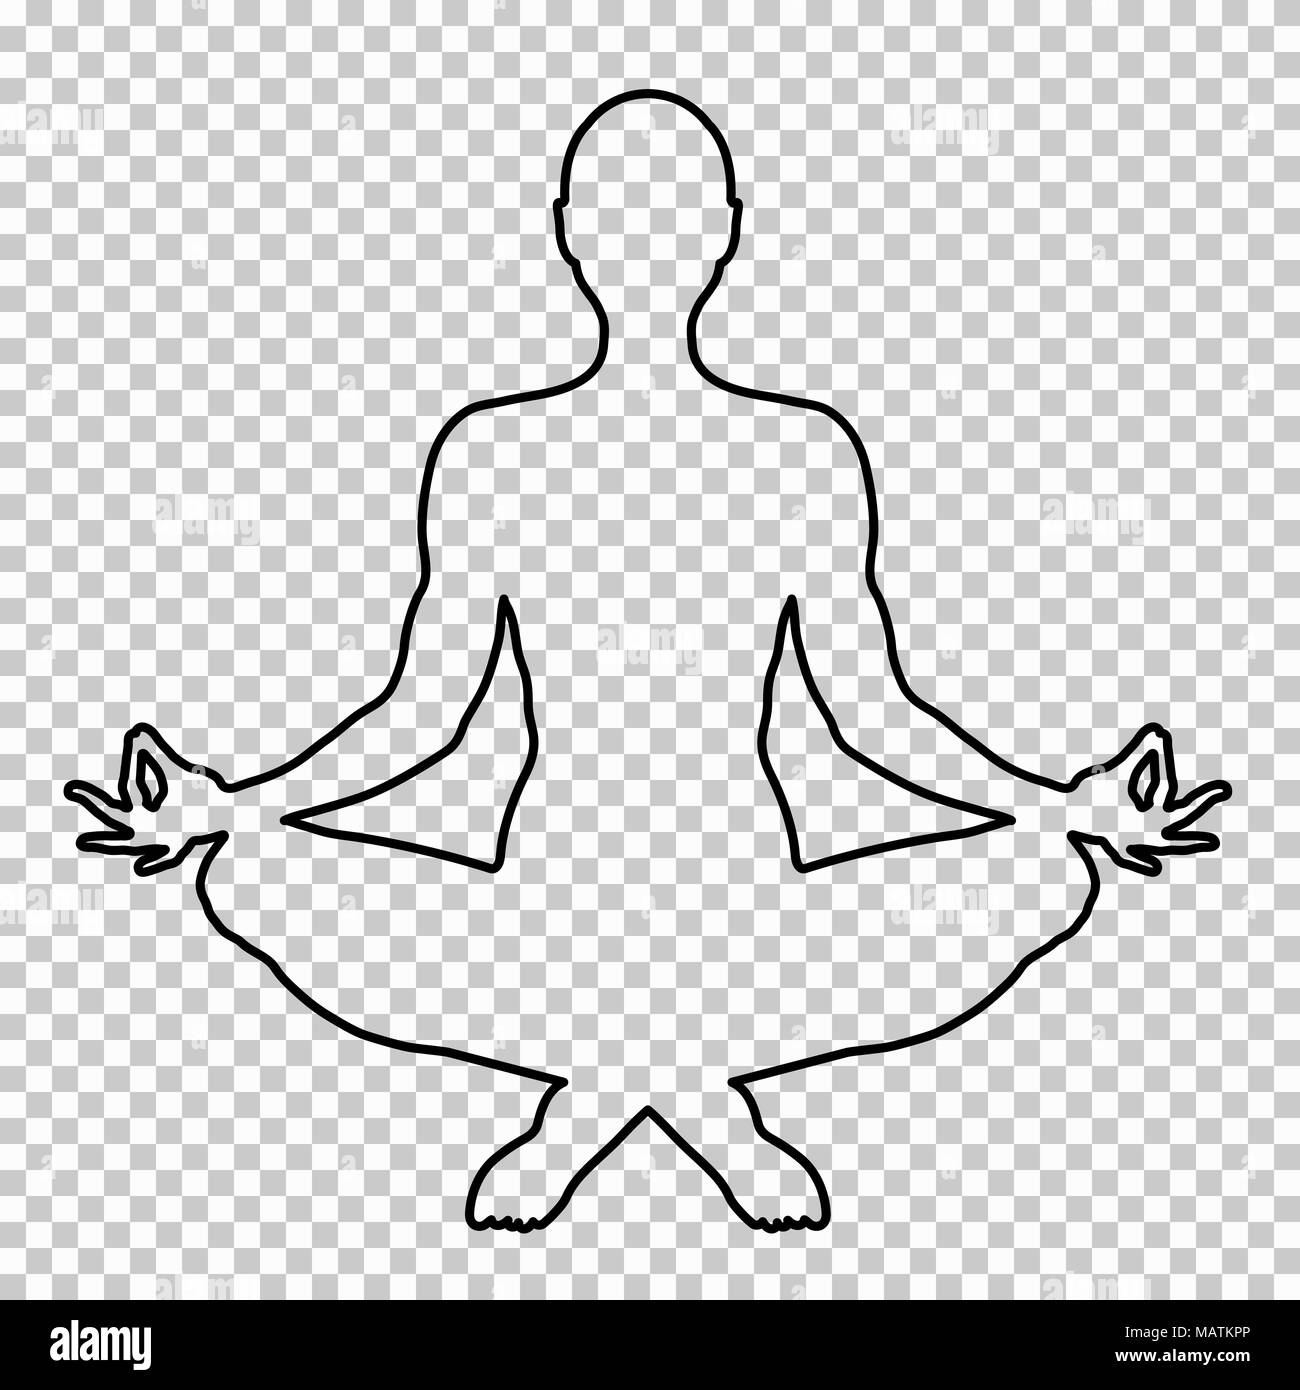 outline figure of a man sitting in lotus pose on a transparent